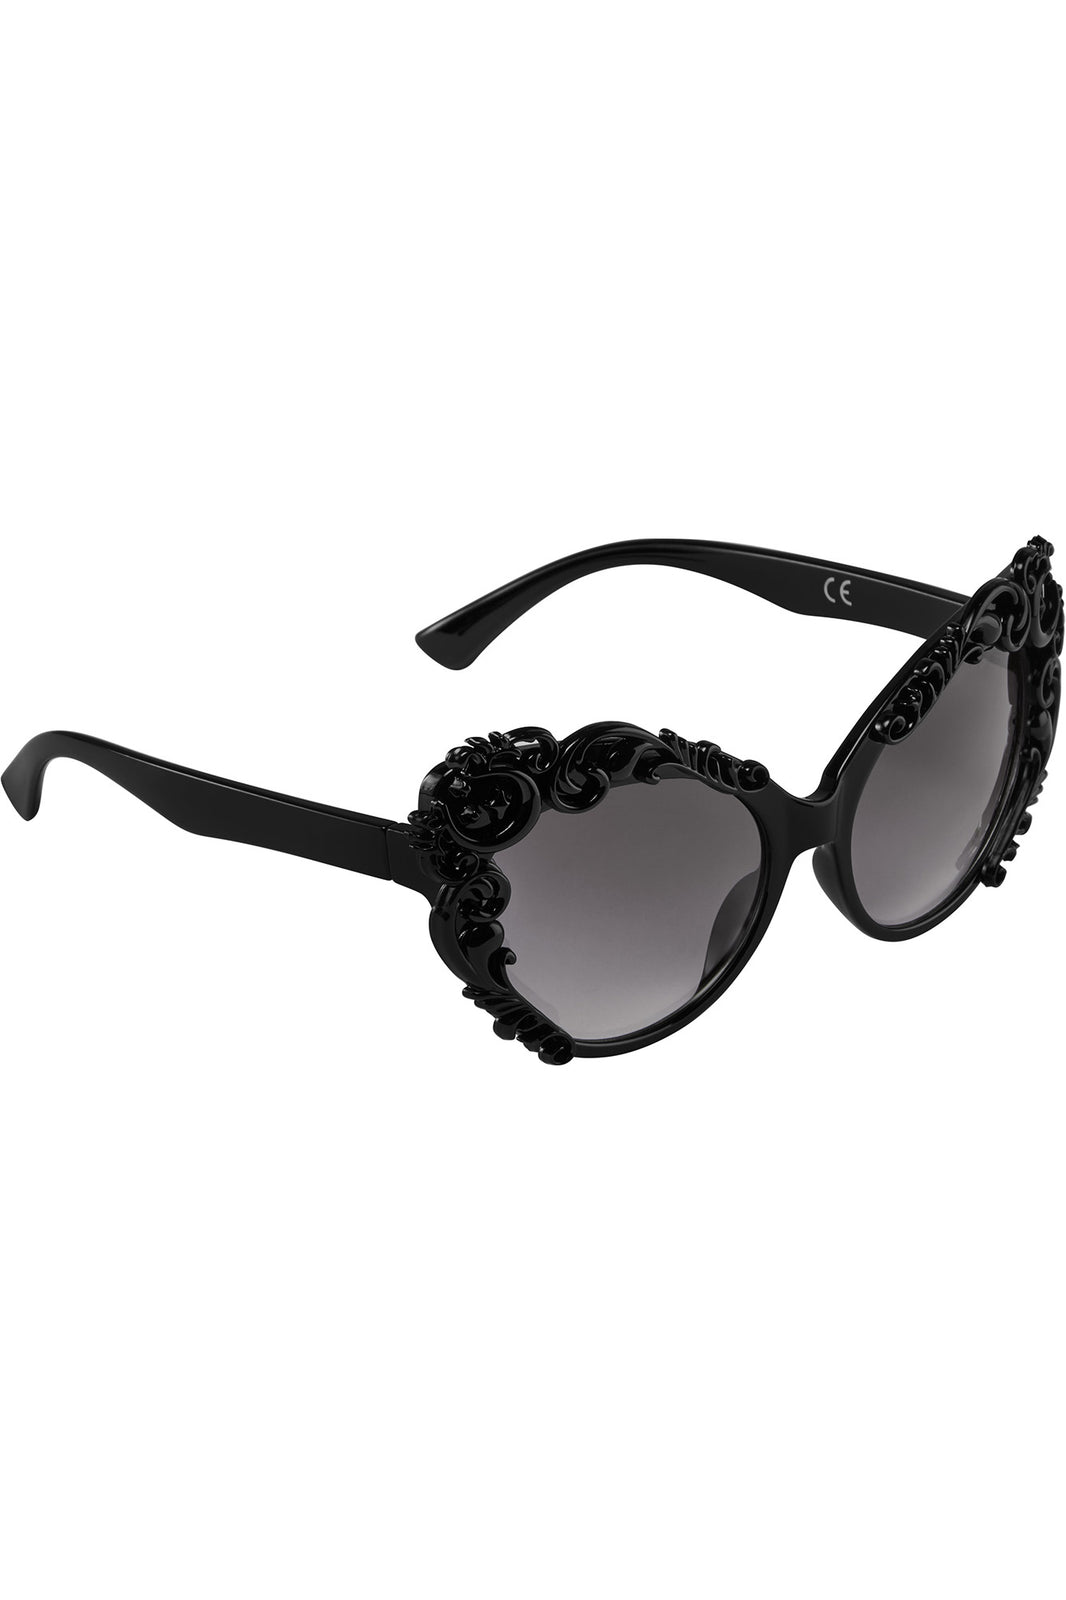 Enchantra Sunglasses